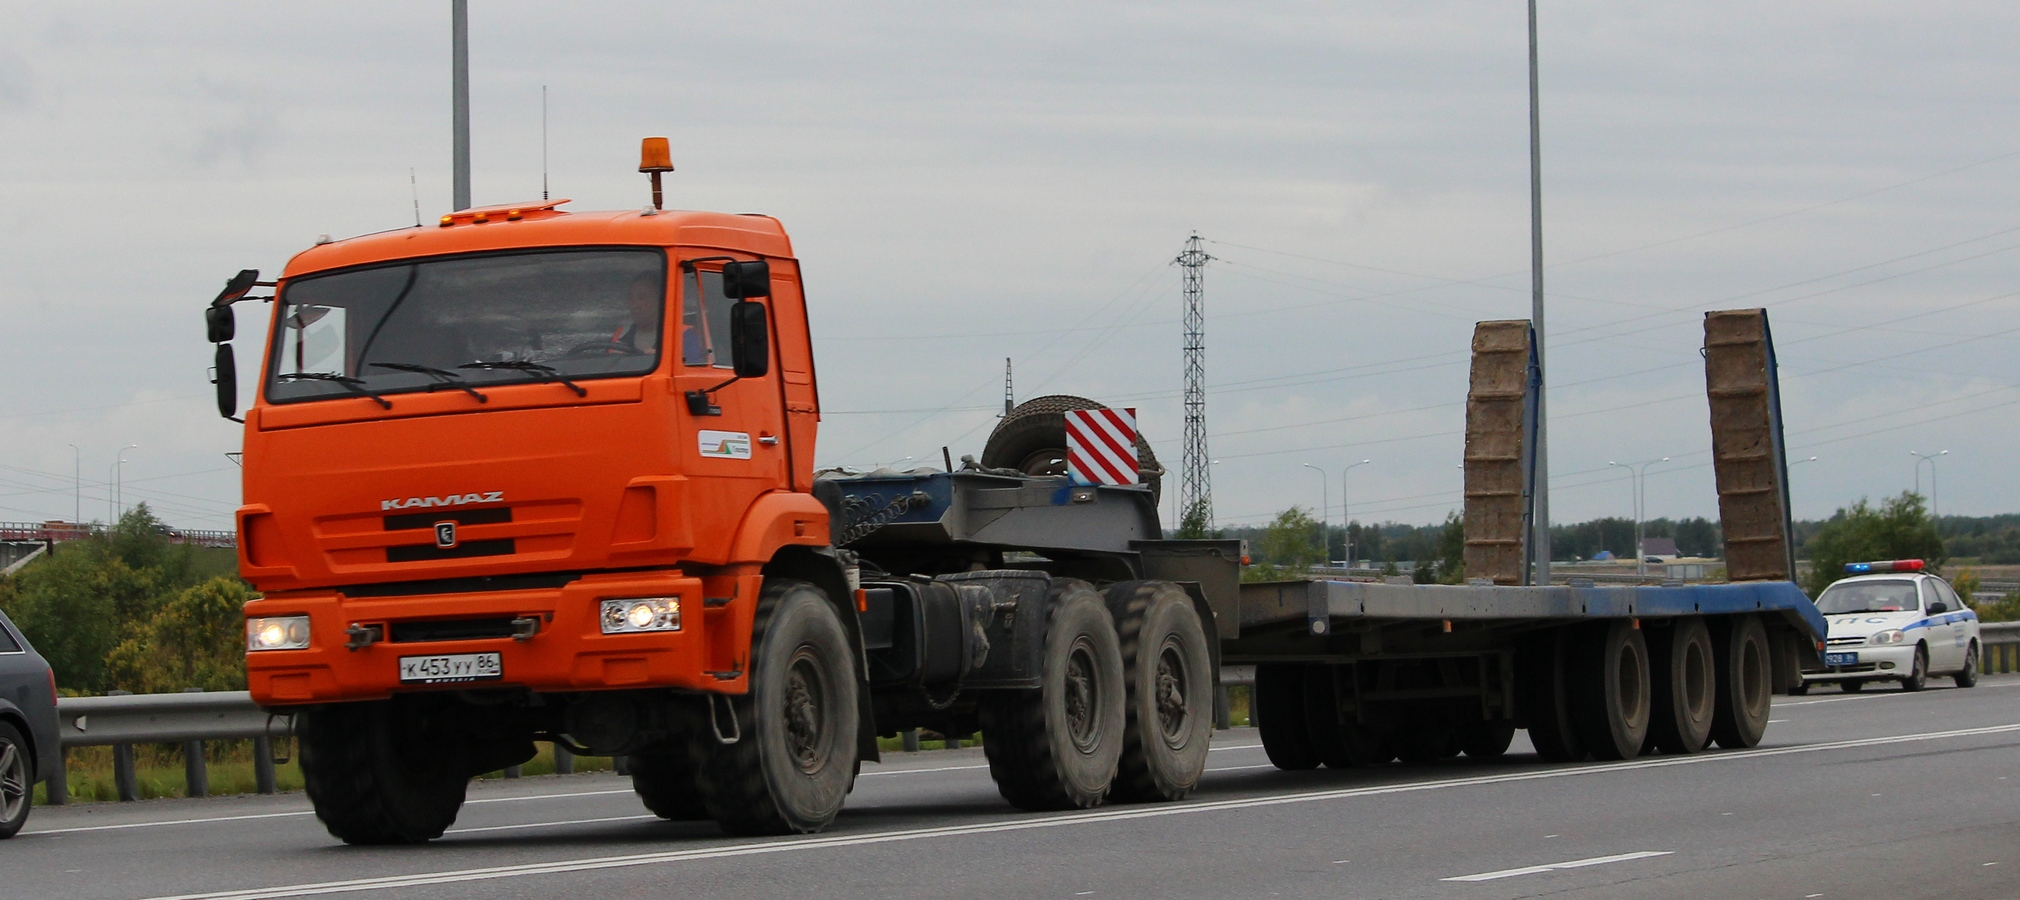 KAMAZ-44108 6X6 GCW 32150 KG, TRACTOR TRUCK (PRIME MOVER)